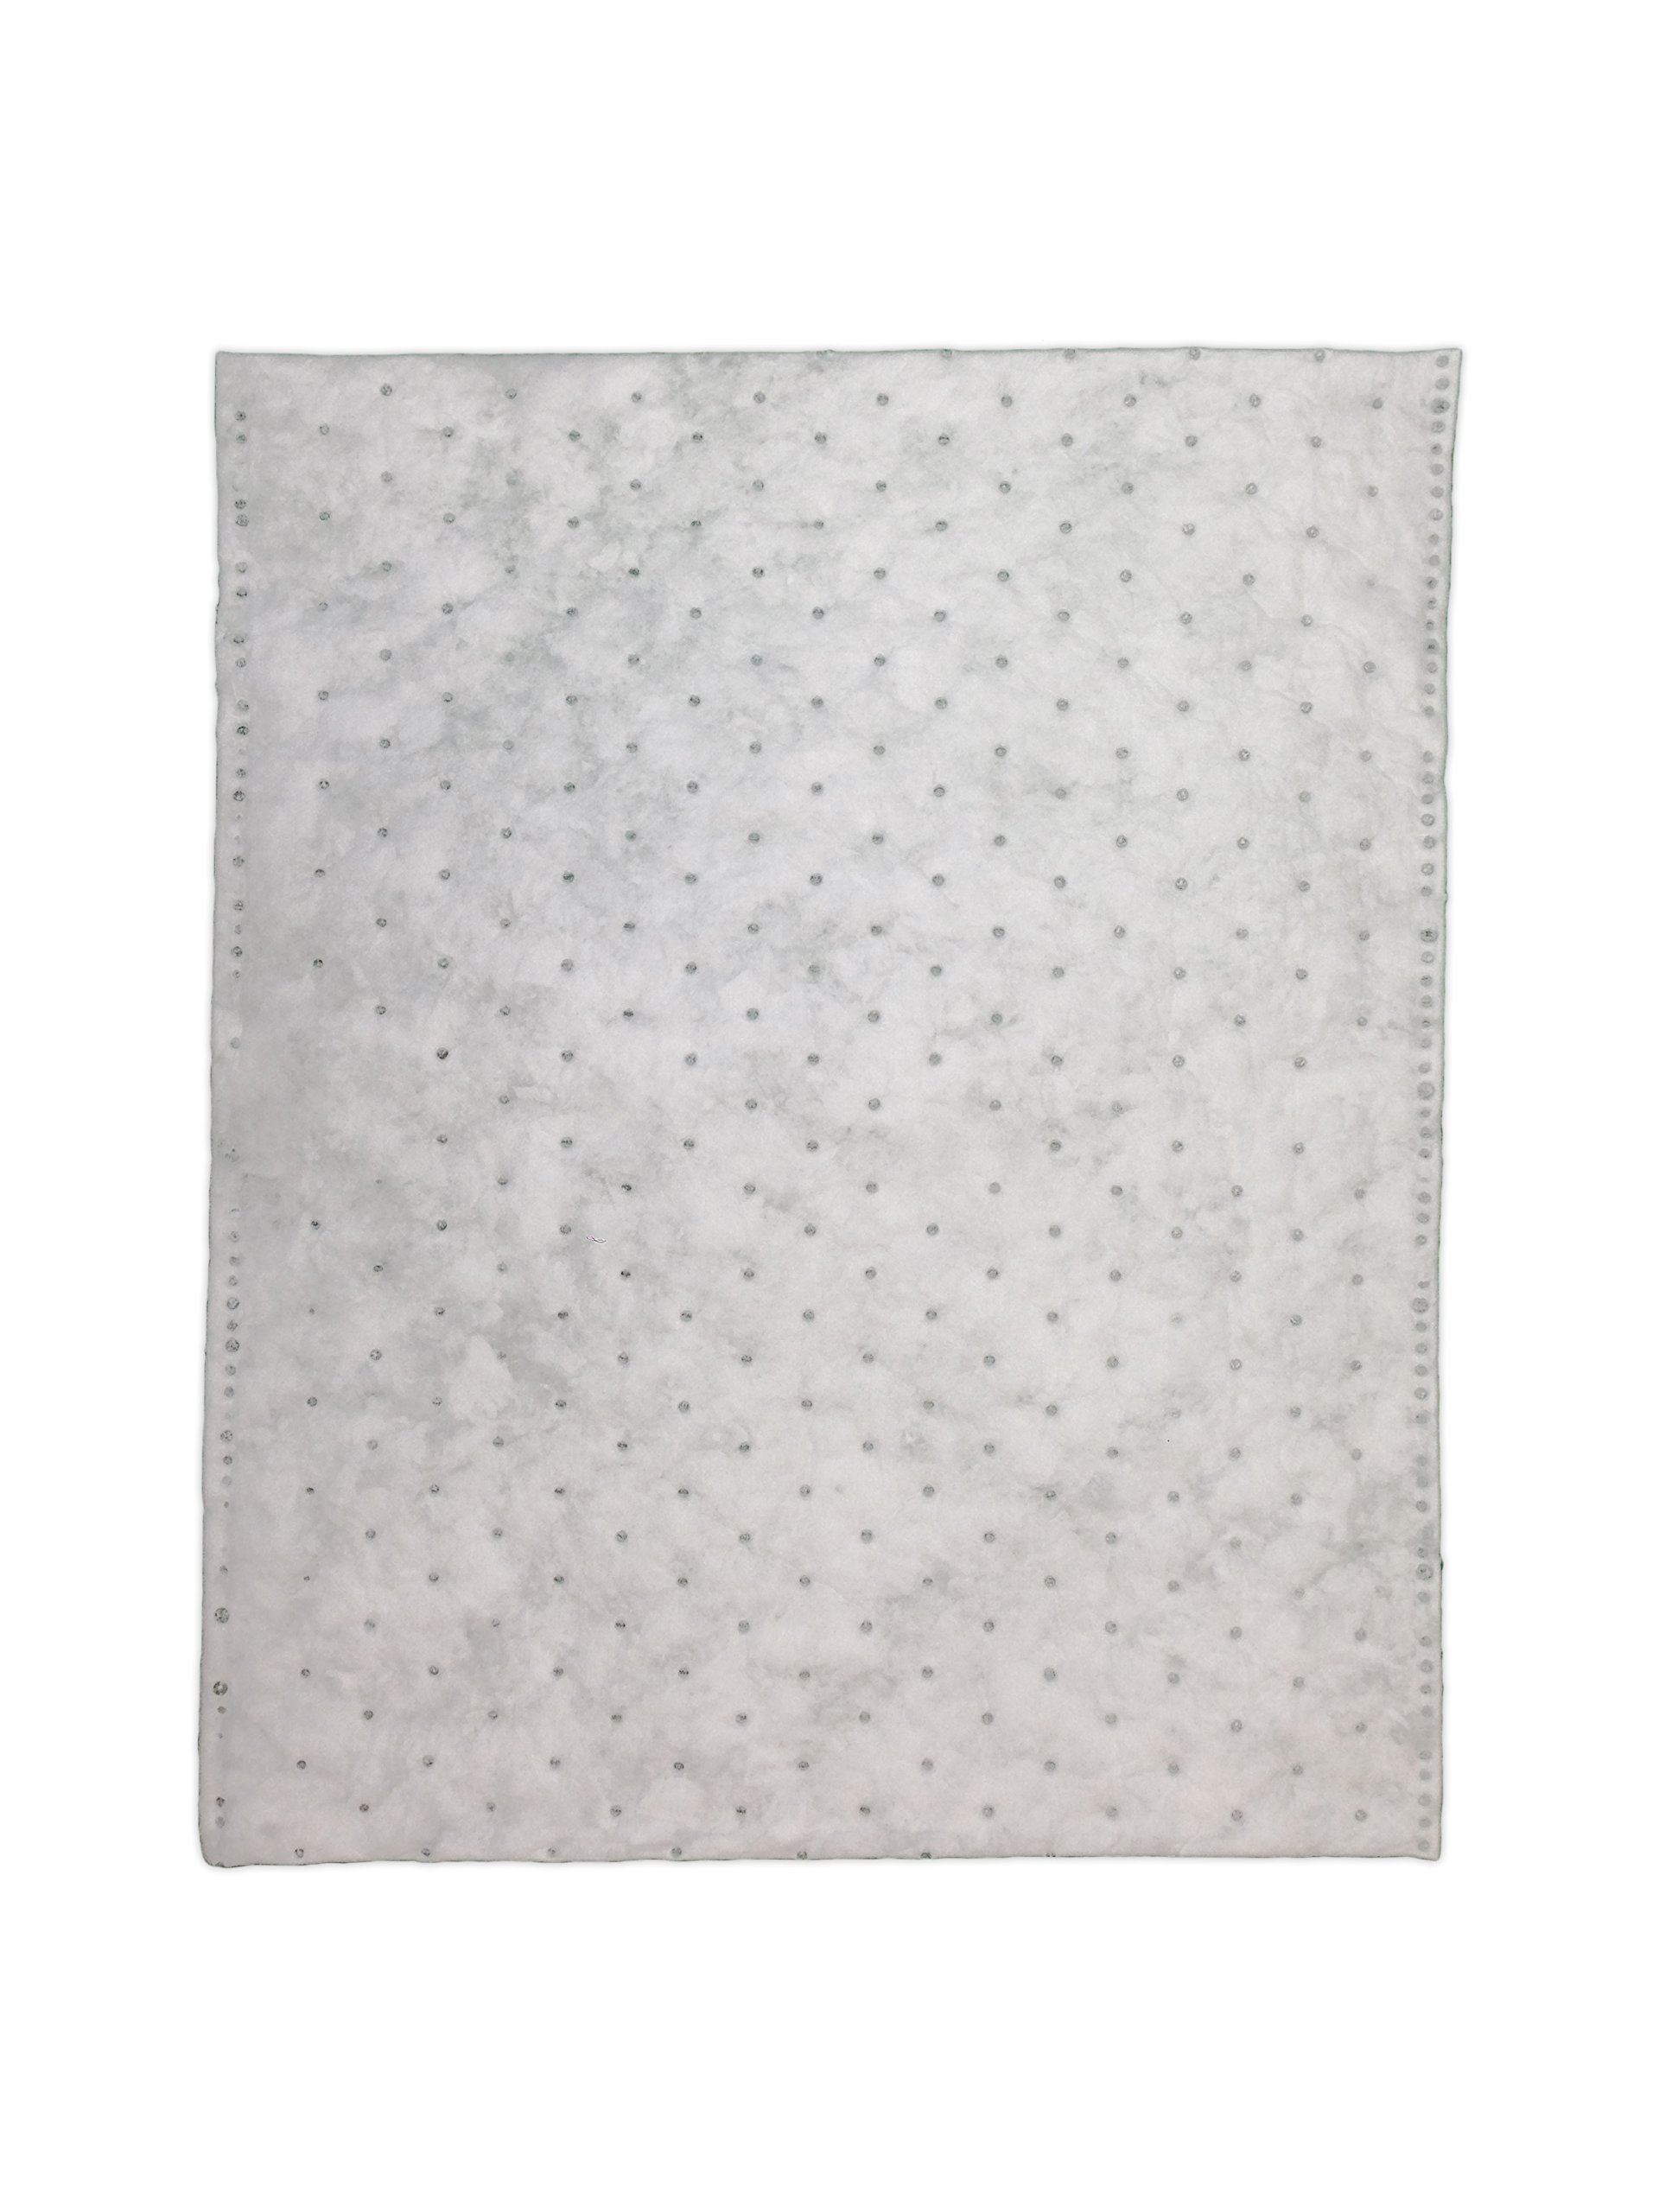 15 in. x 18 in. ¼ gal. Oil Absorbent Pad (100-Pack) by Oilinator